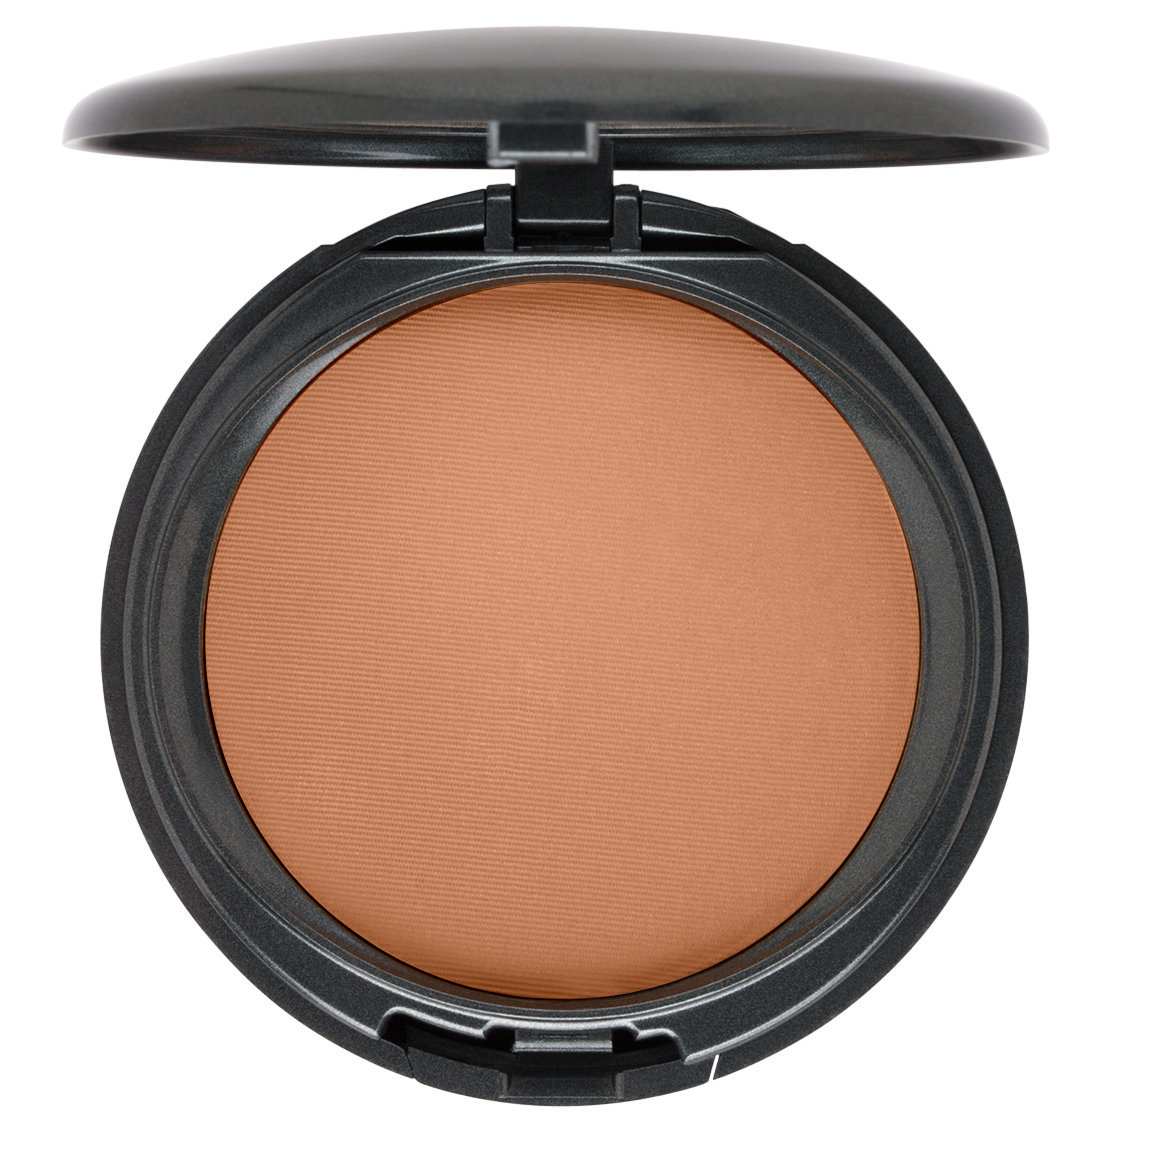 COVER | FX Pressed Mineral Foundation P50 product swatch.